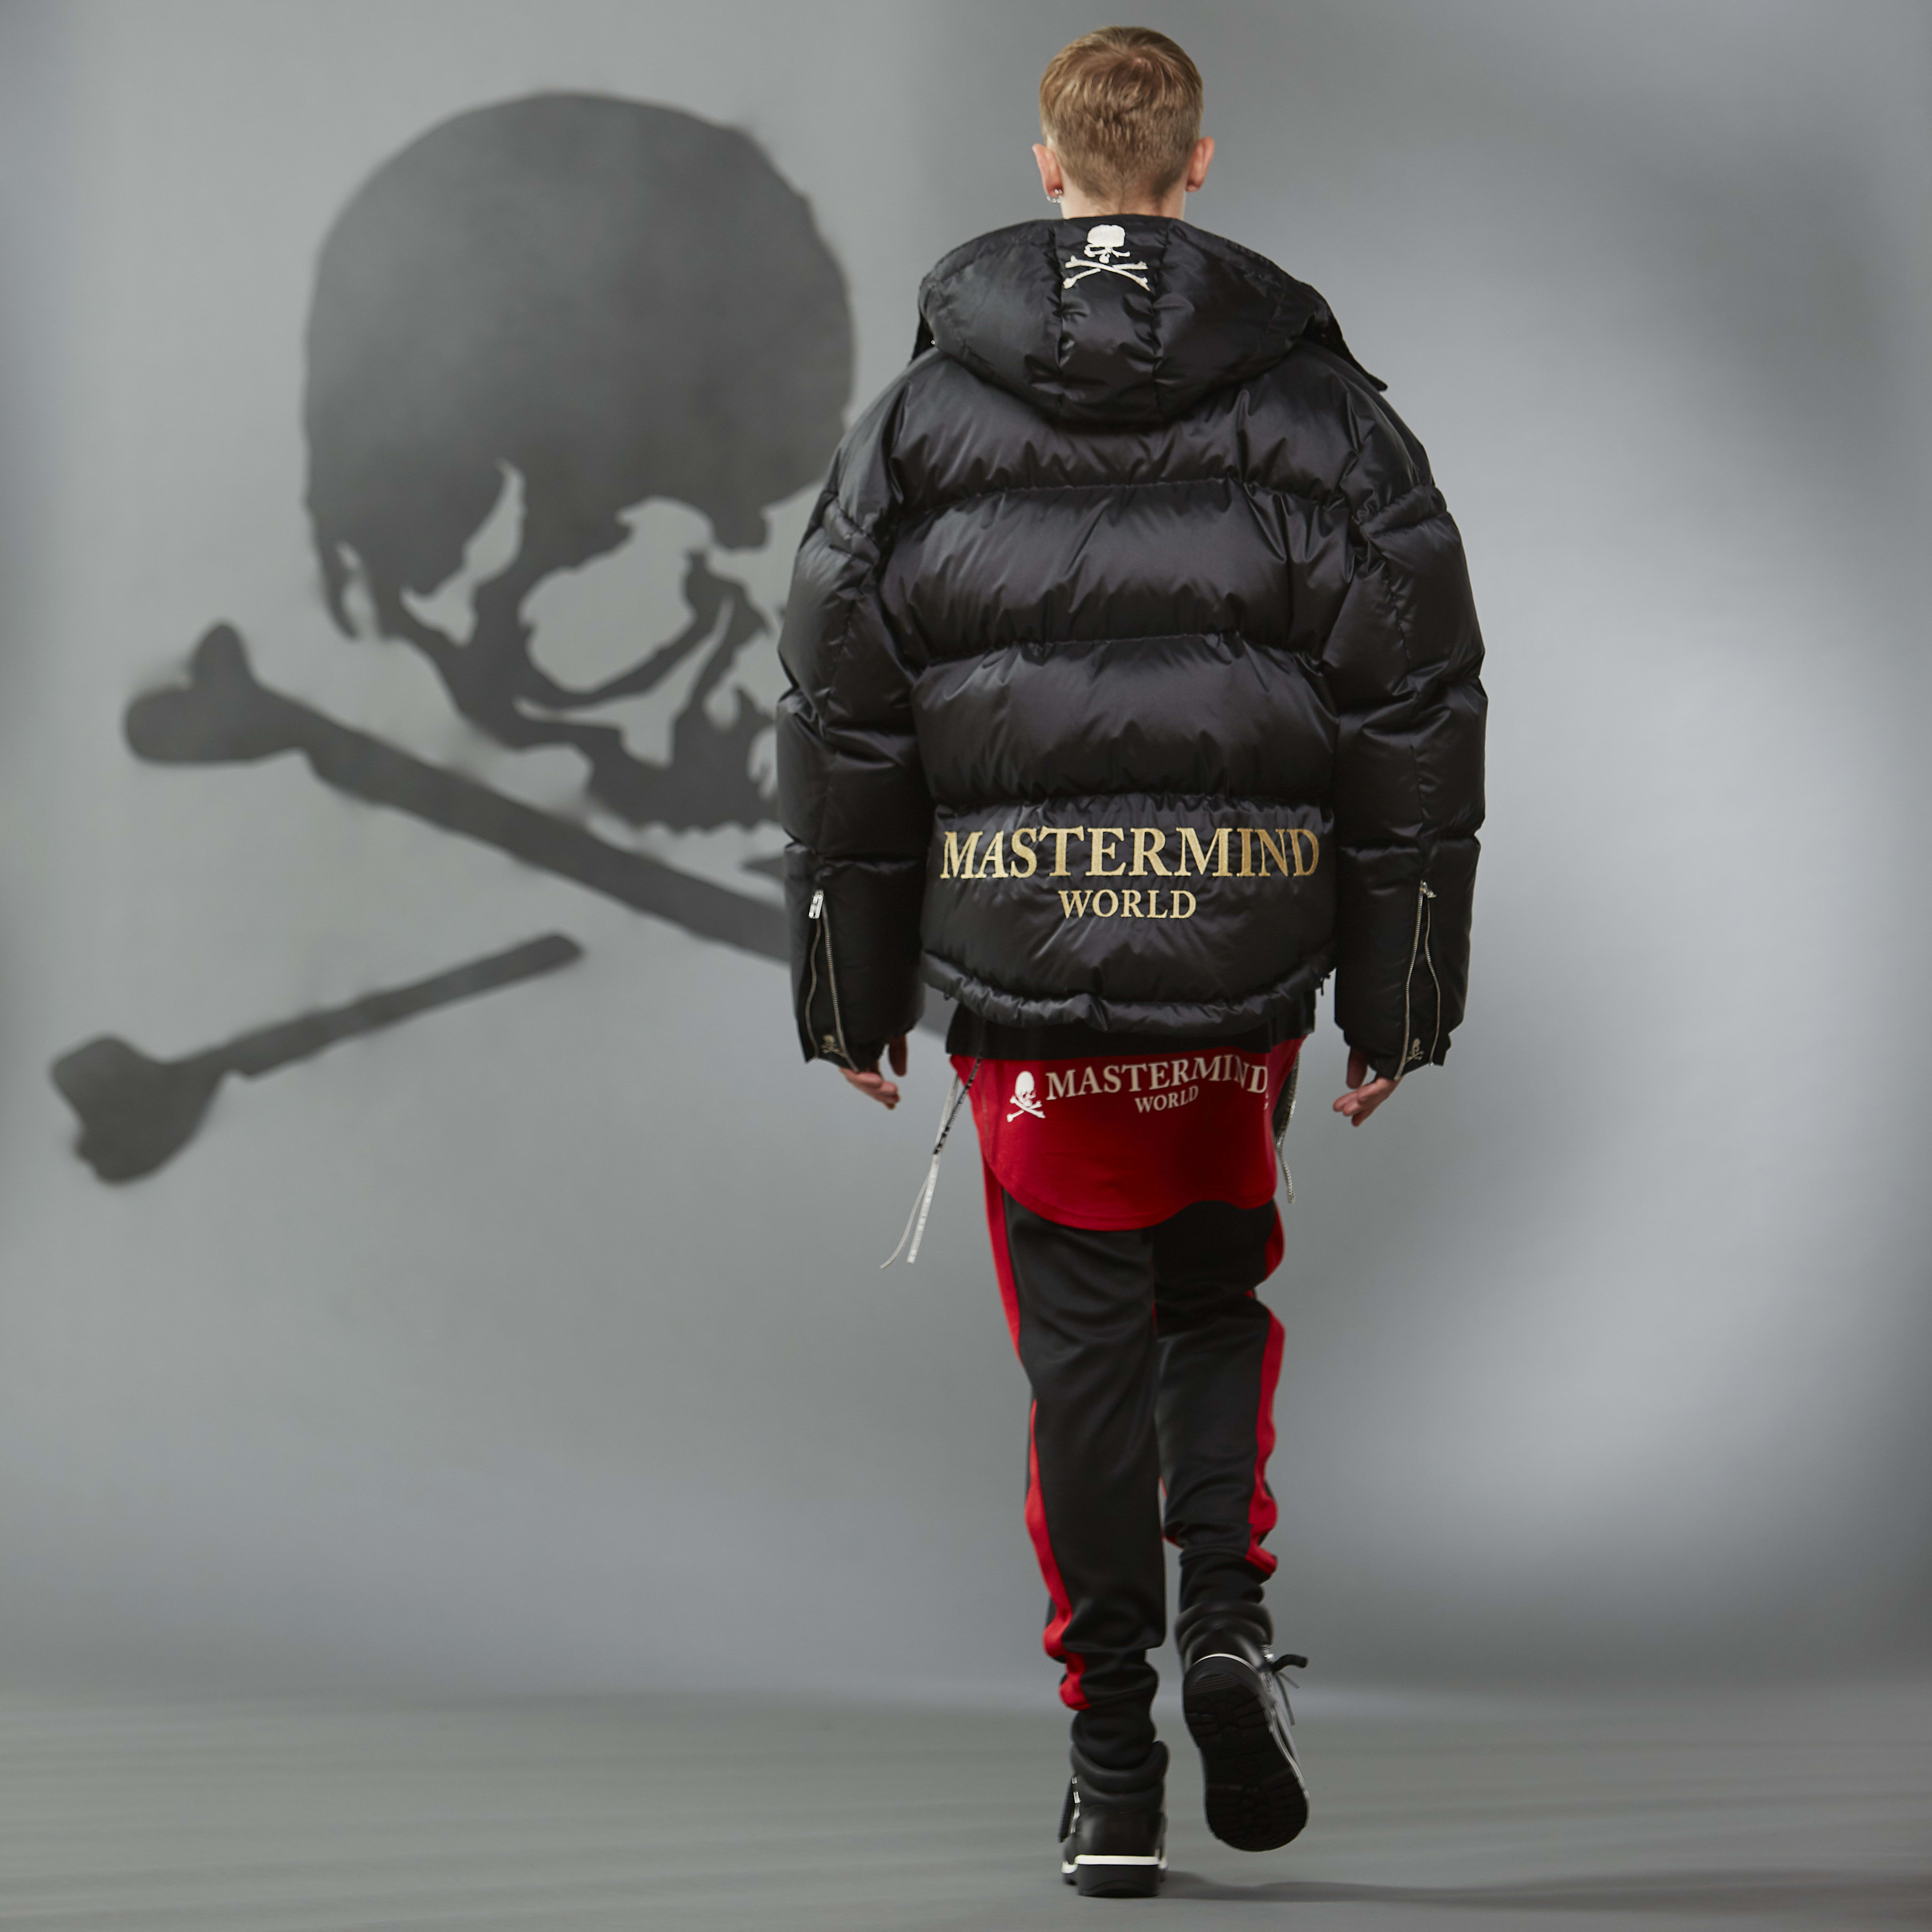 MASTERMIND WORLD FW19 look book presentation with black down jacket